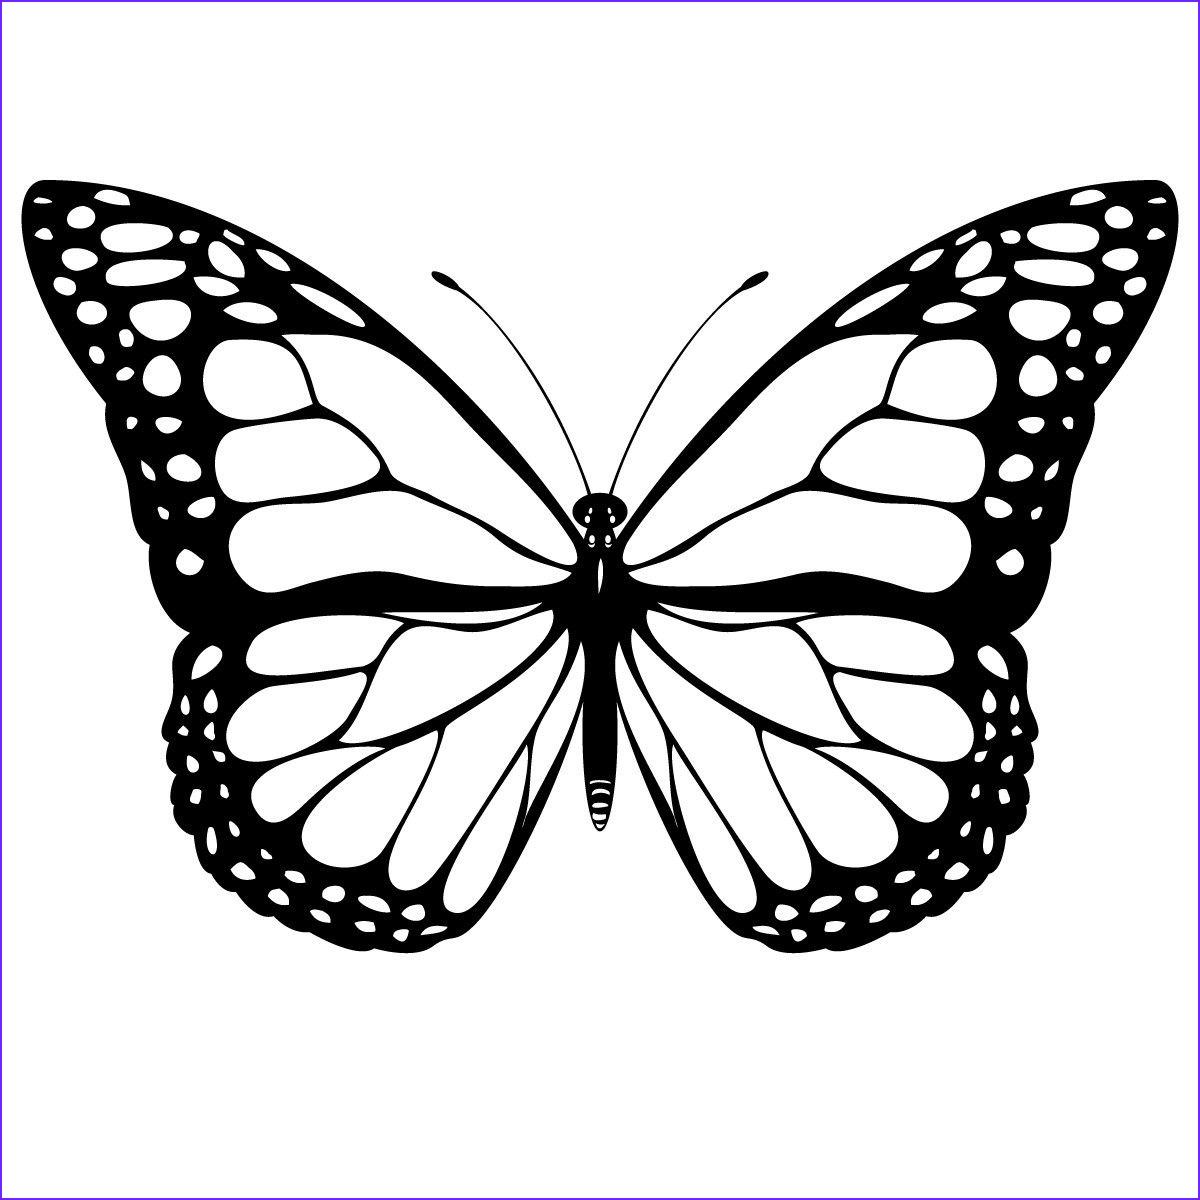 Butterfly Coloring Sheet Free Beautiful Images Free Printable butterfly Coloring Pages for Kids